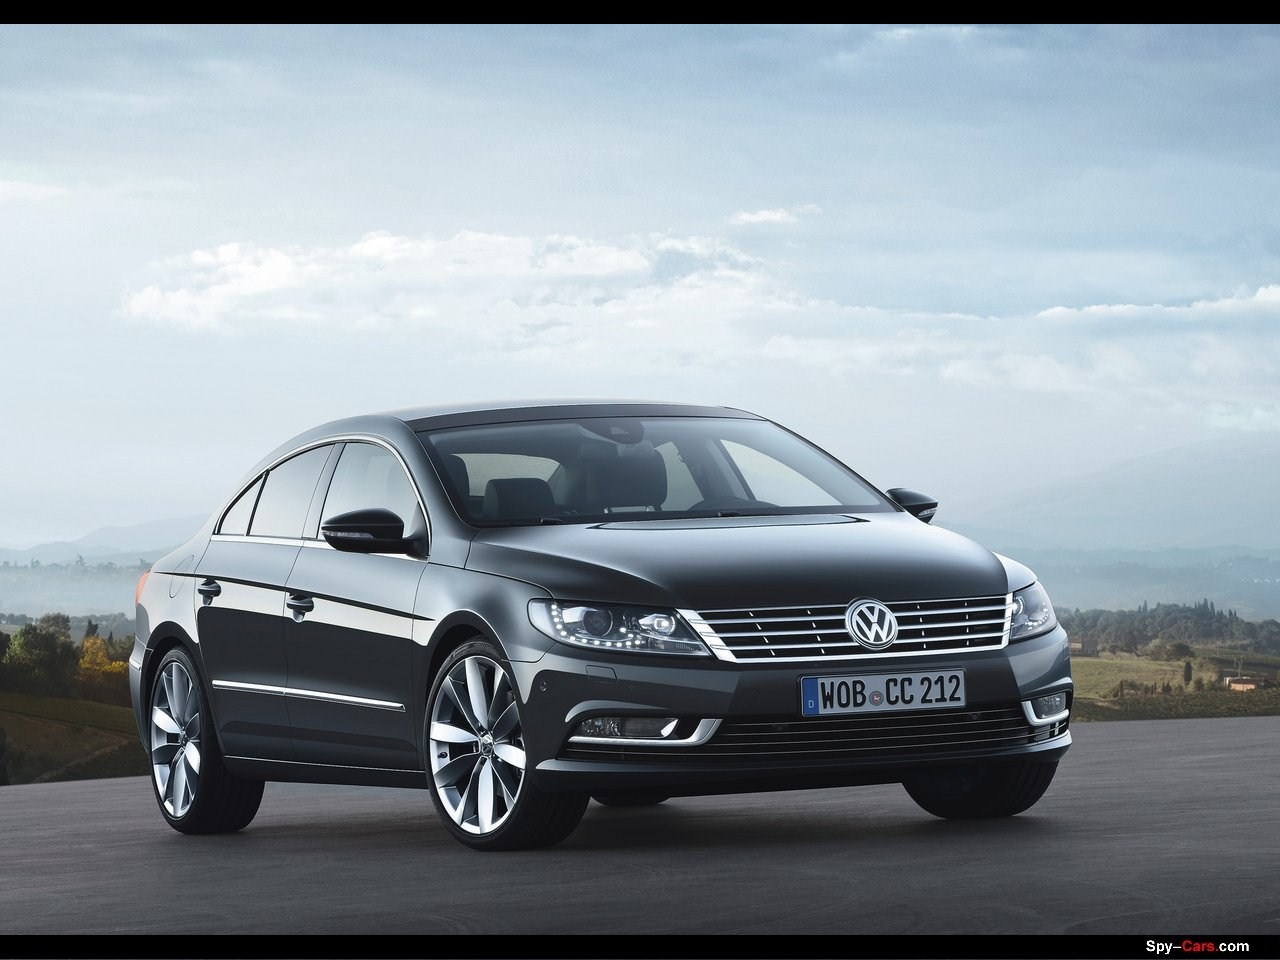 2013 volkswagen passat cc volkswagen cars. Black Bedroom Furniture Sets. Home Design Ideas